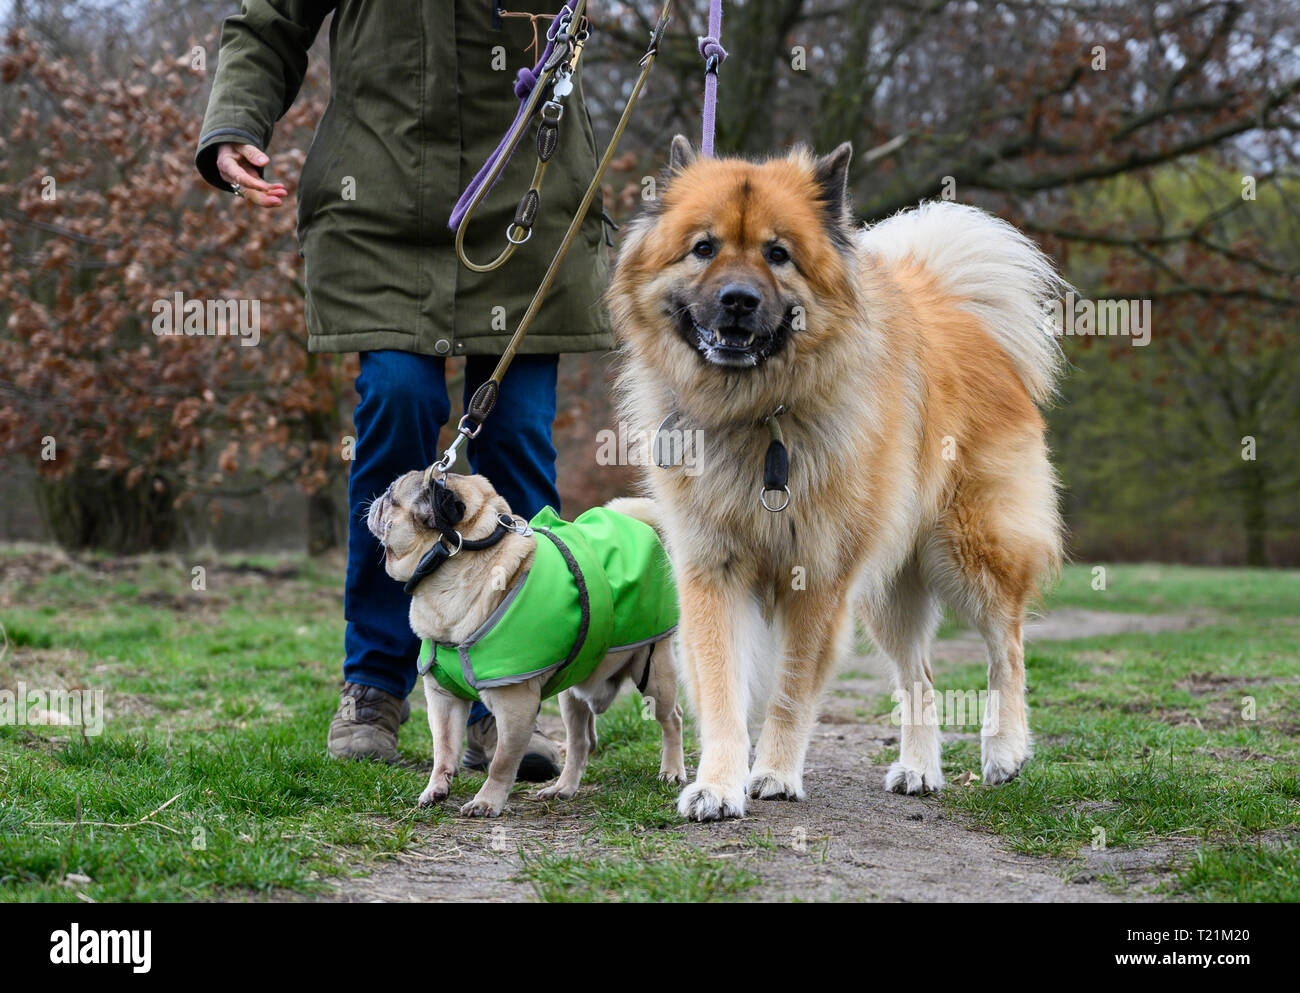 Hannover, Germany. 26th Mar, 2019. A woman goes for a walk with her dogs Caruso (l), 11 year old pug, and Lucio, 9 year old Eurasier. From 01.04.2019 dogs have to be kept on a leash in many places in Lower Saxony. During the so-called brood and Setzzeit, the quadrupeds may not run freely approximately in the forest and on field-paths. Credit: Christophe Gateau/dpa/Alamy Live News - Stock Image